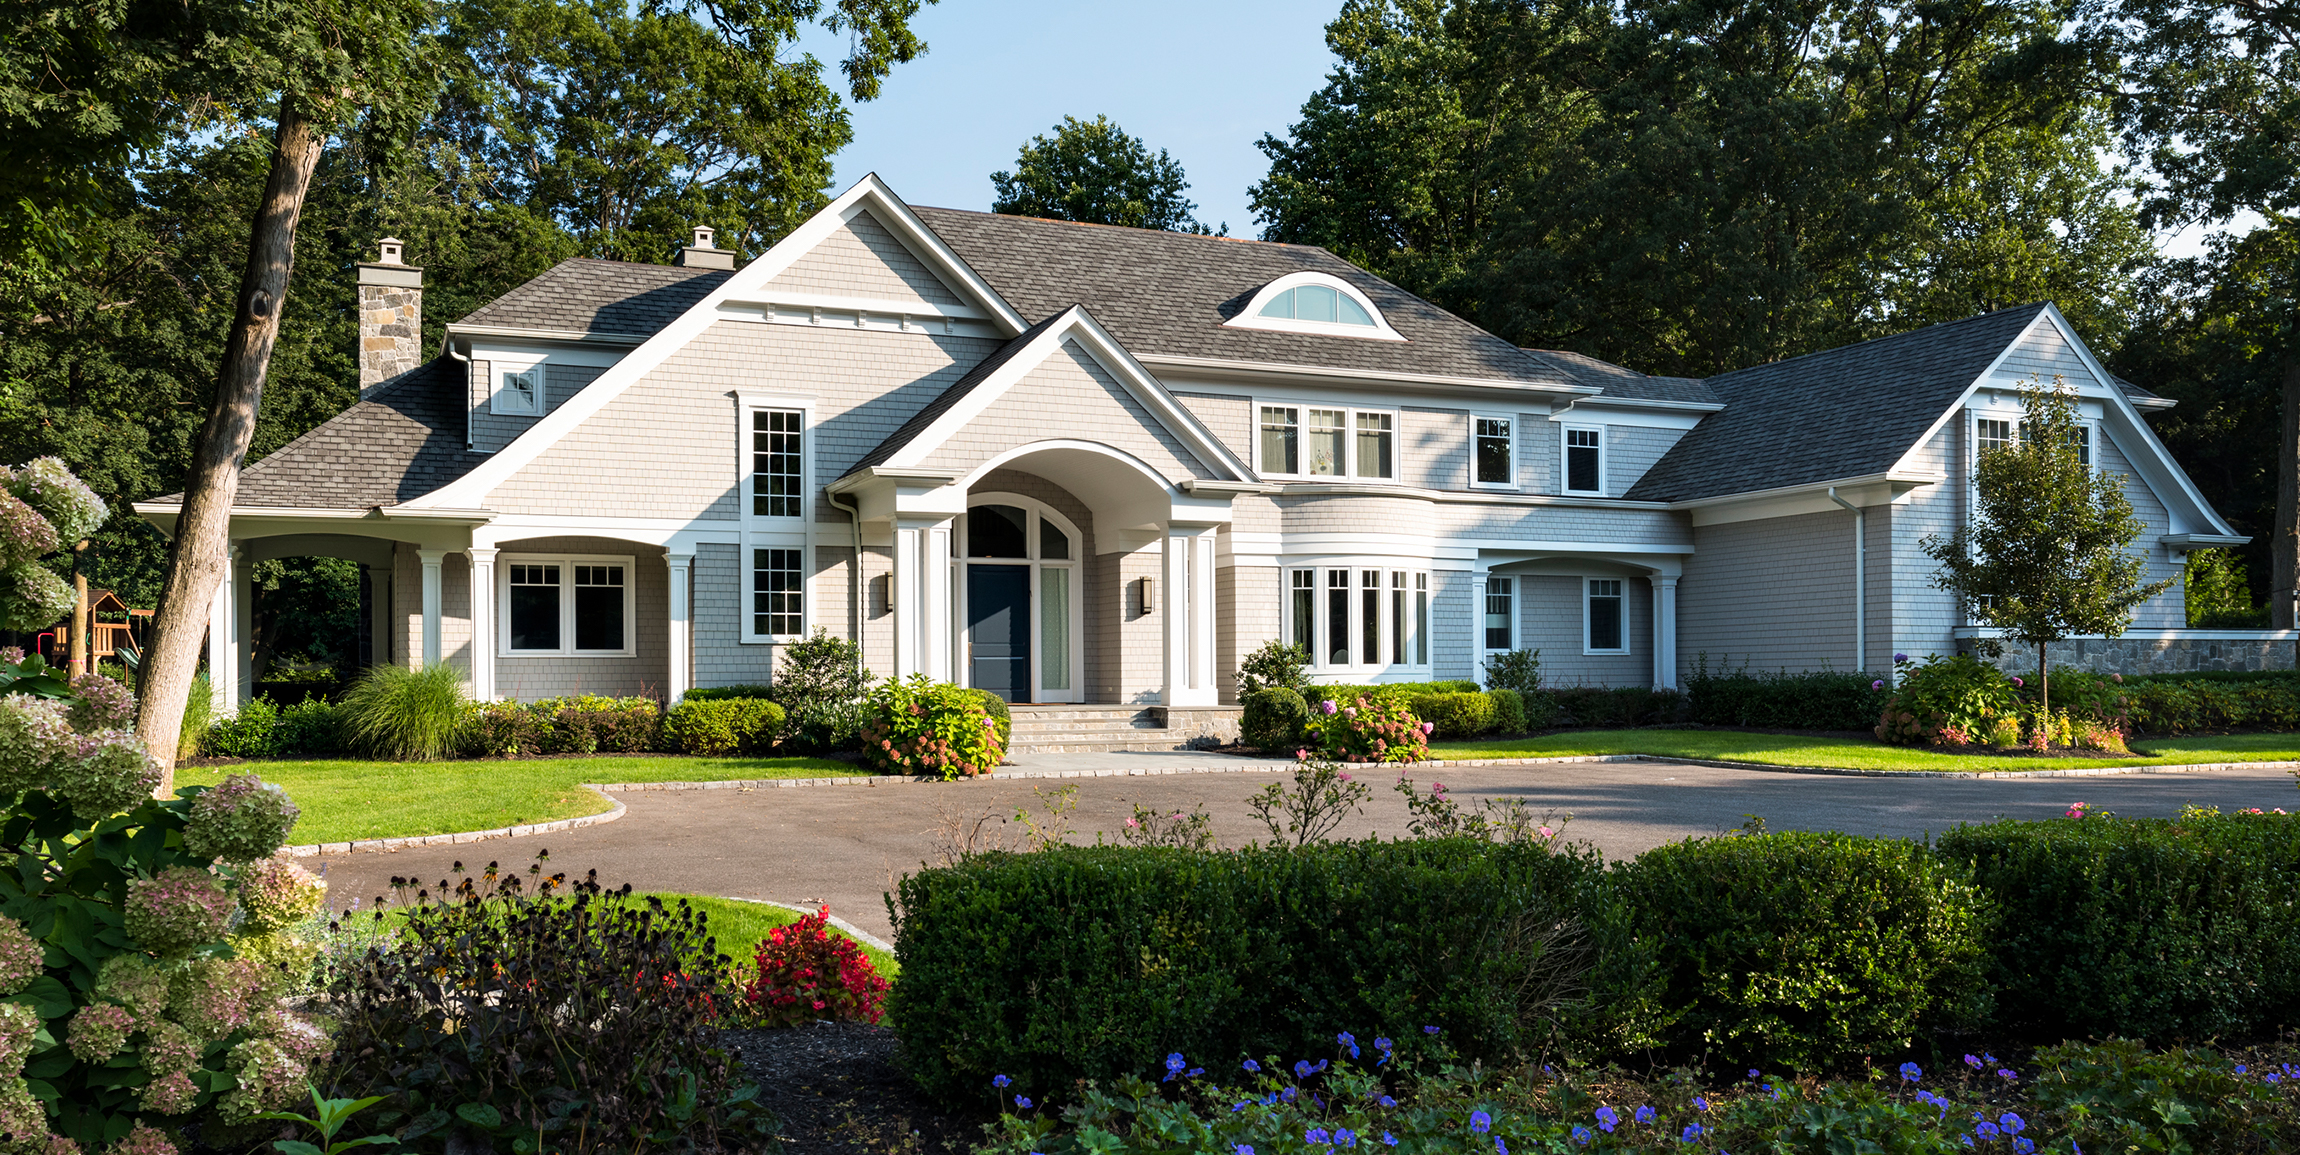 Exterior photo of a shingle style home